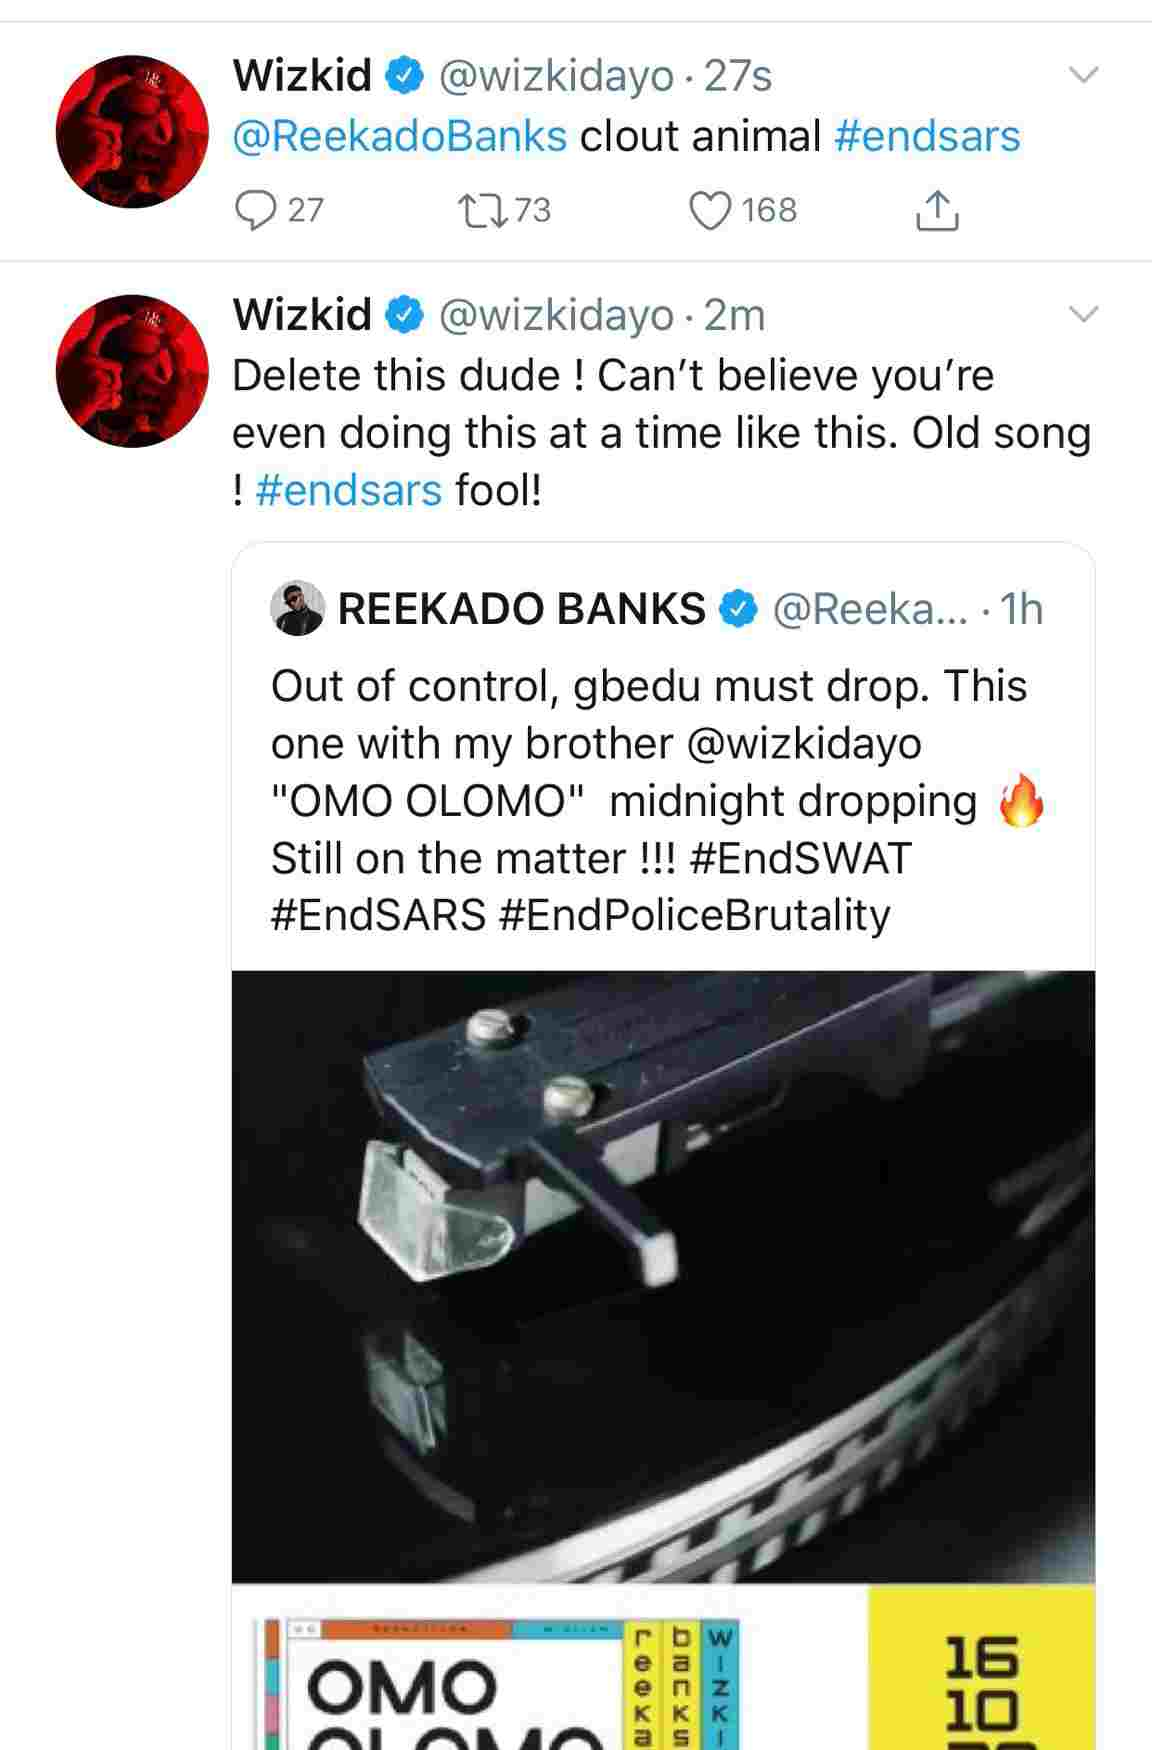 Wizkid blasts Reekado for Releasing their 'Old Song' Amidst #ENDSARS protests